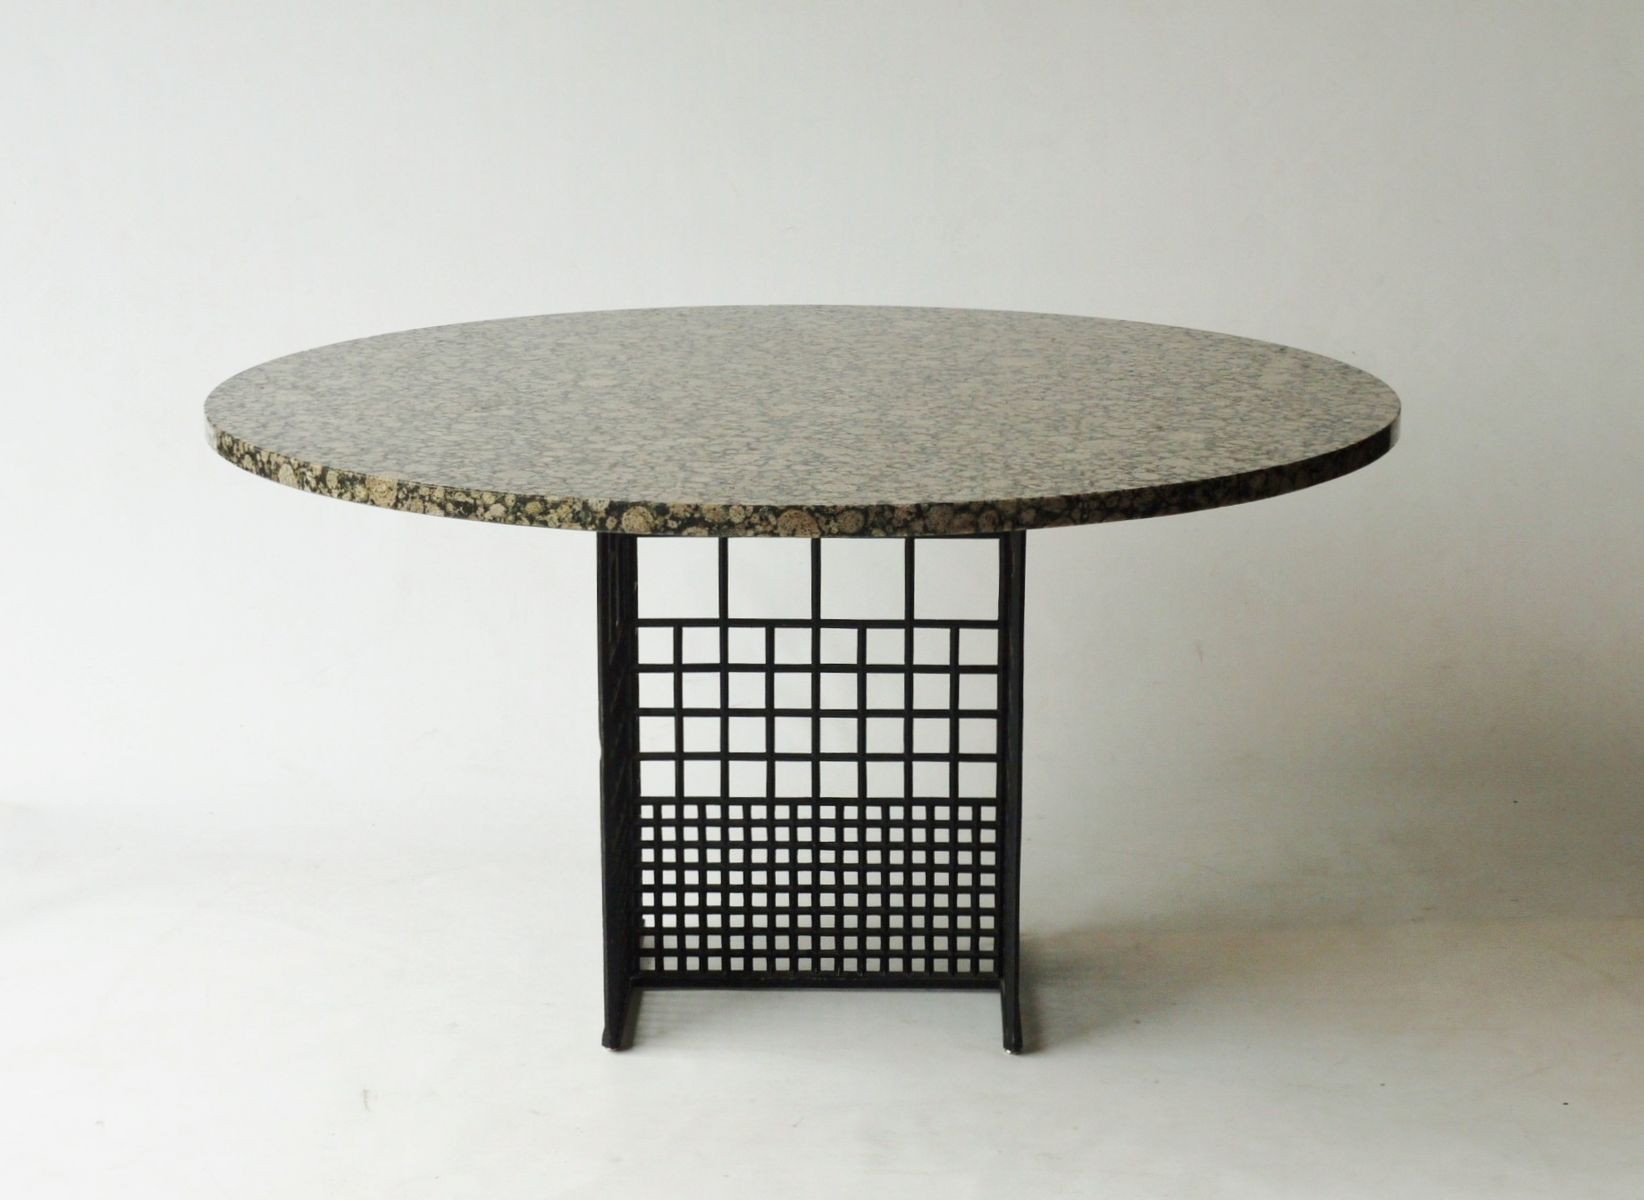 Vintage Dining Table With Granite Top 1980s For Sale At Pamono